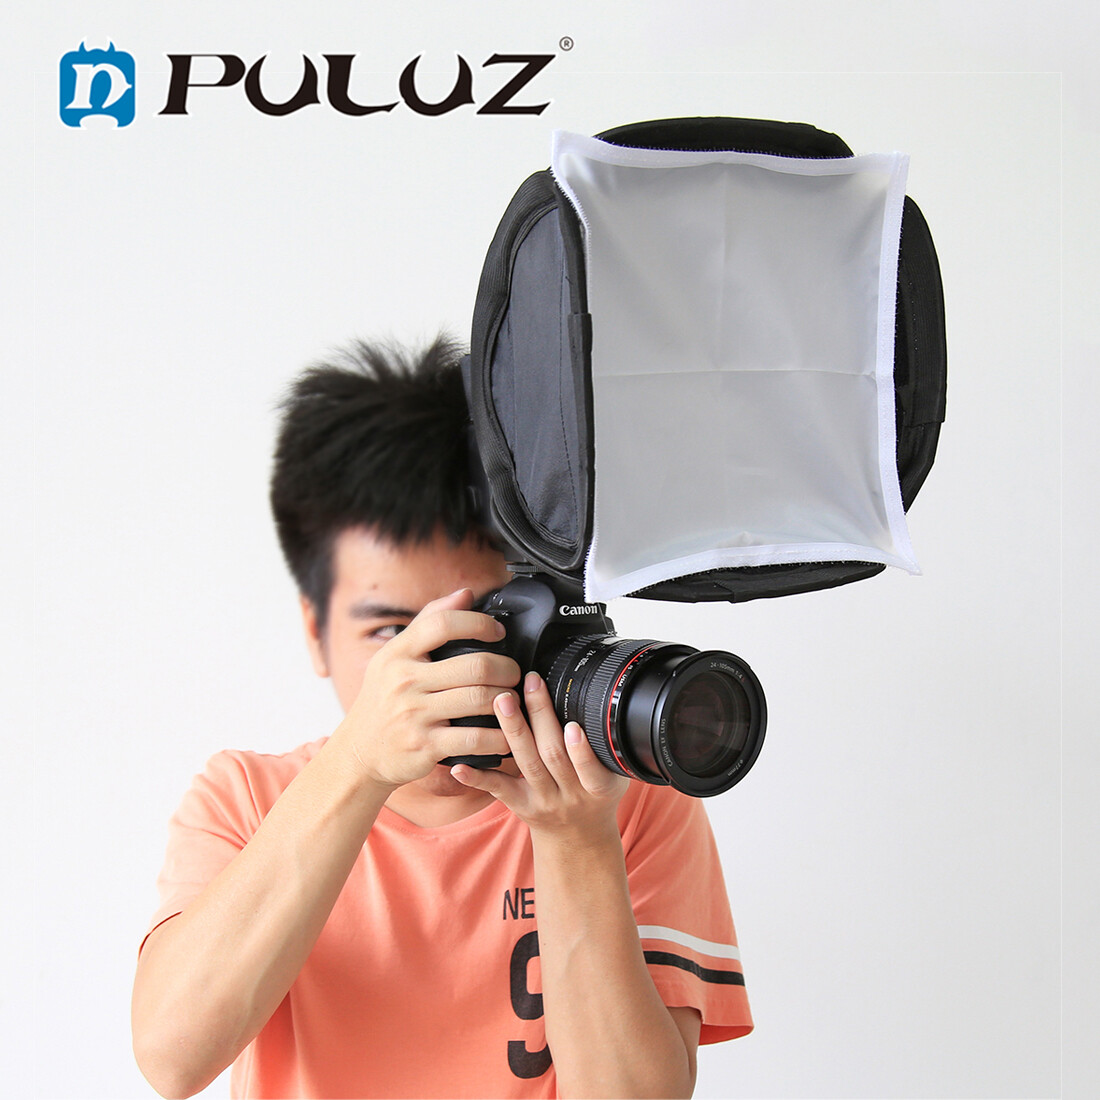 Puluz 23cm Universal Foldable Flash Light Diffuser Octagon Speedlight Diffuser Softbox Soft Box For Canon / Nikon / Sony / Olympus Diffuser Softbox Neewer Cloth Fabric Cover For Led Light Ring Kit Sock Panel Flash Cannon.